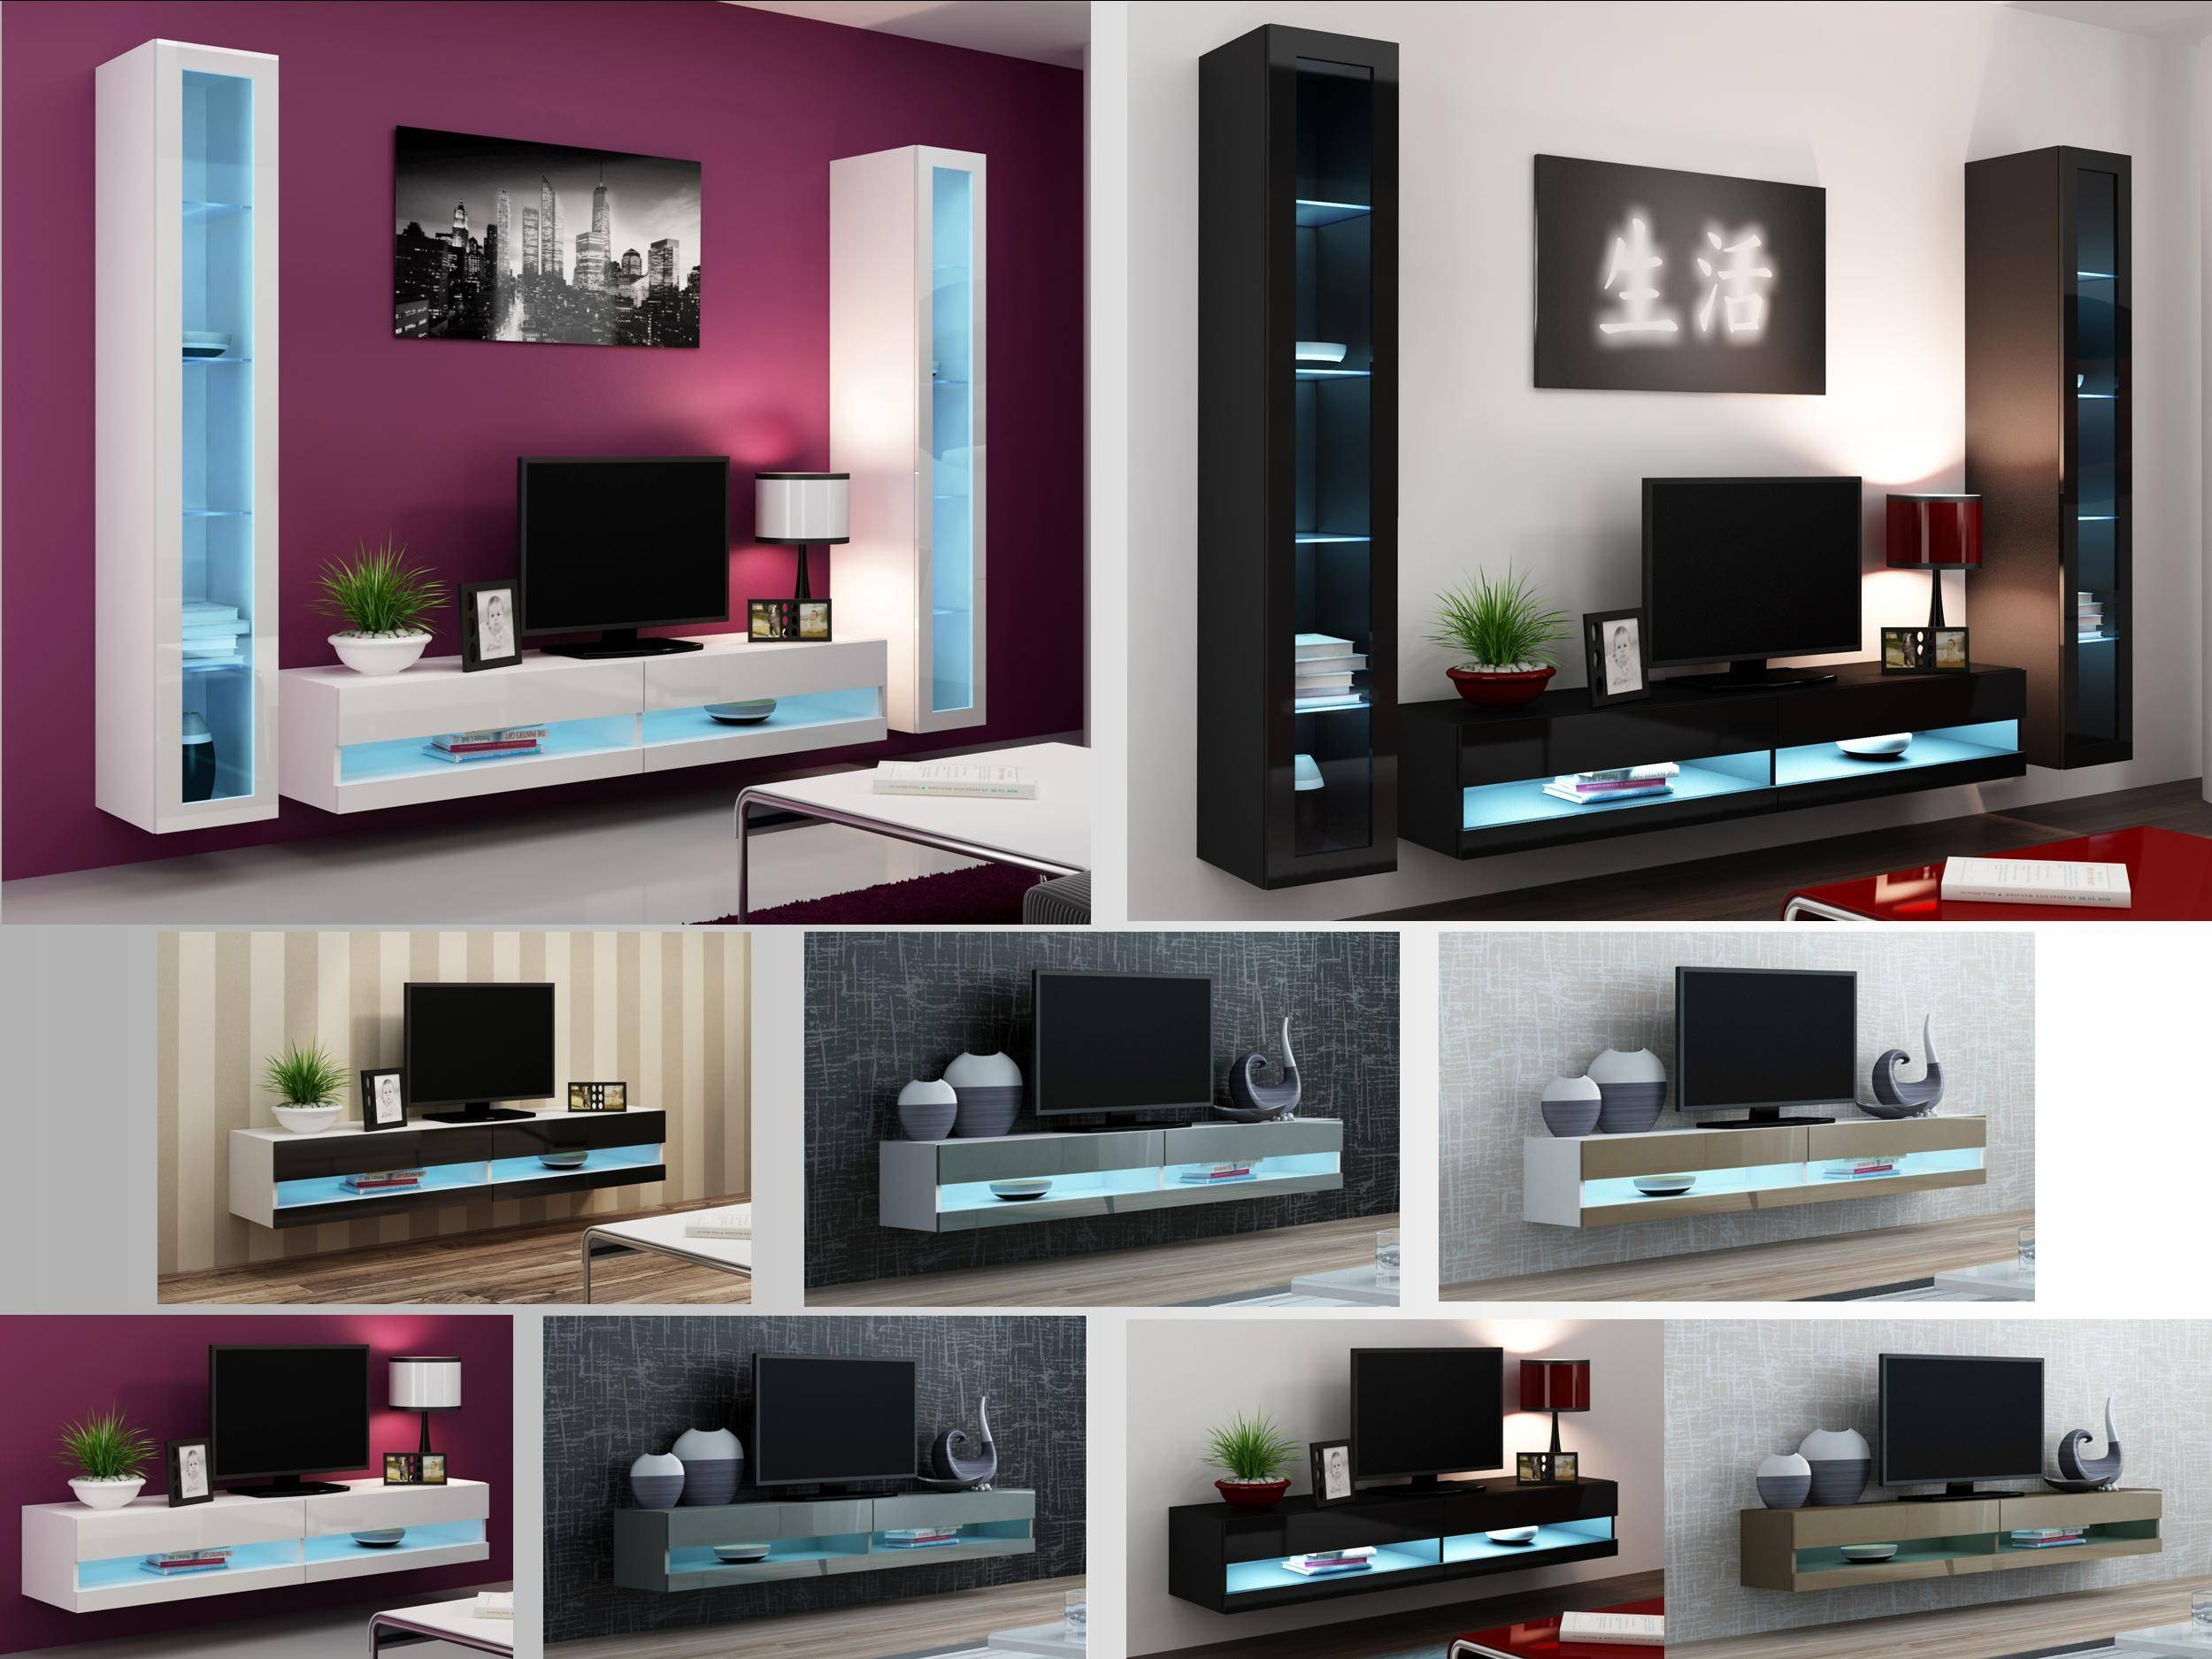 Best 15 of tv cabinets and wall units - Dresser as tv stand in living room ...